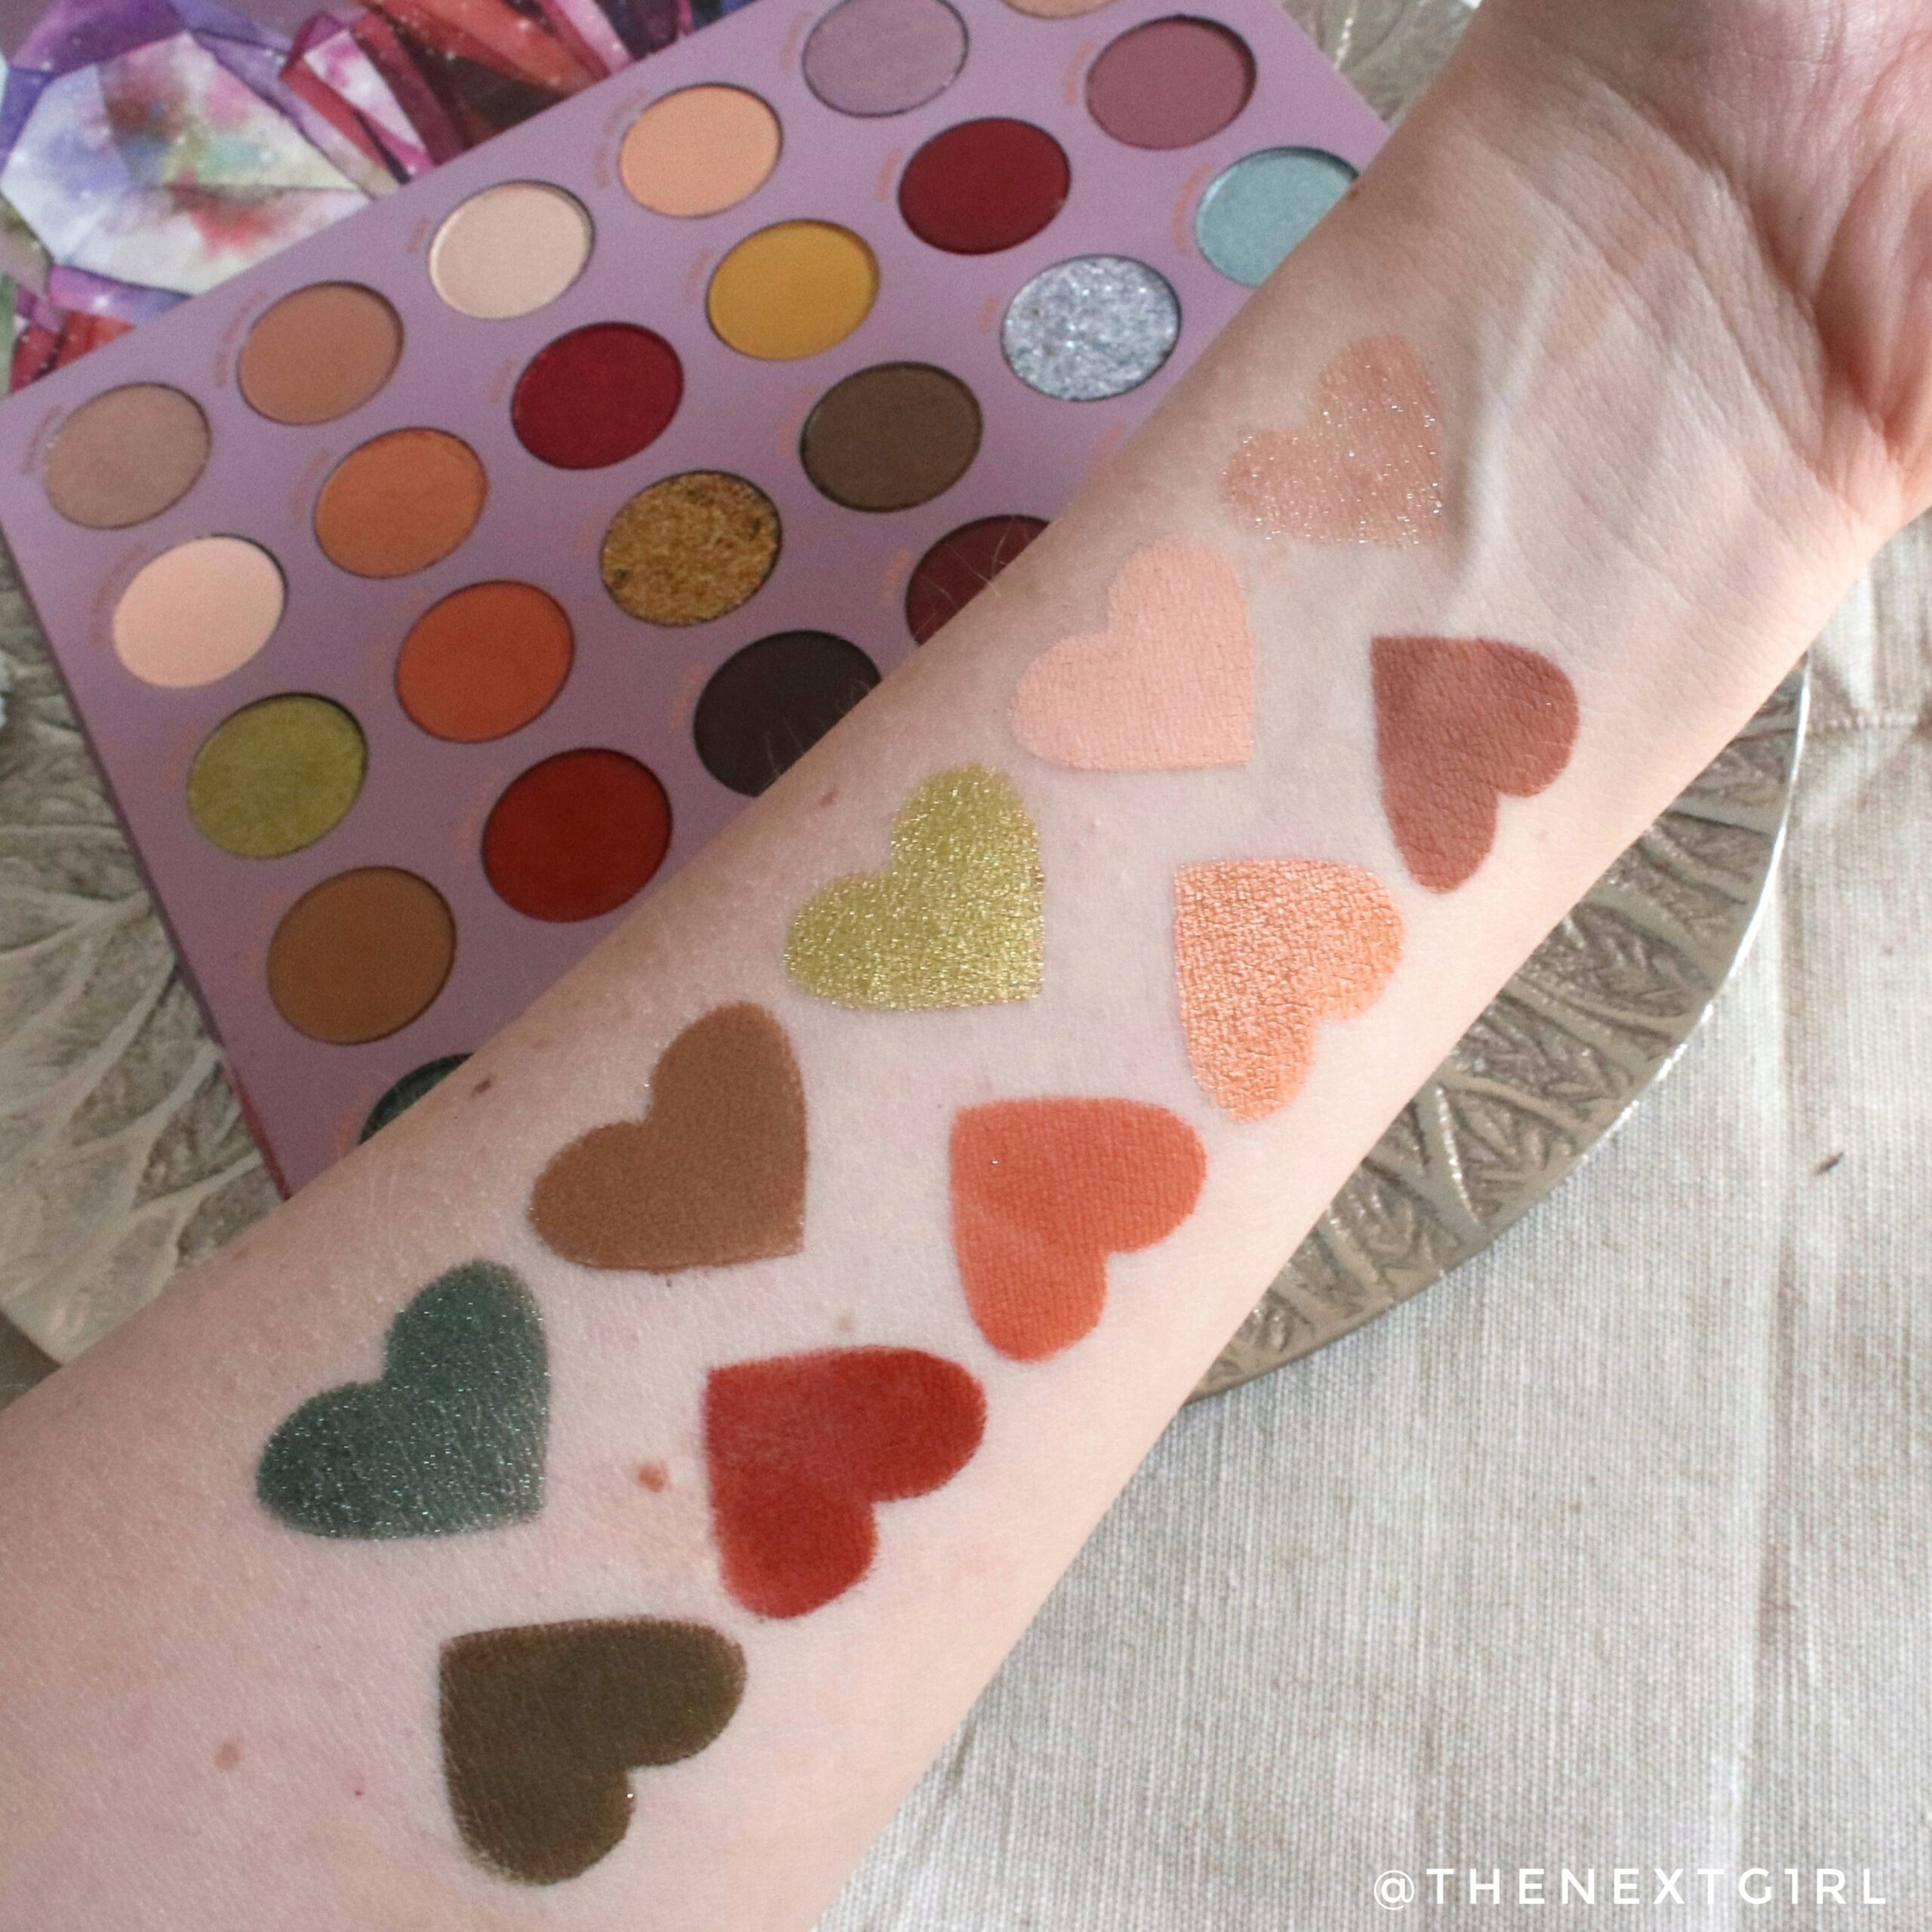 Swatches 1 Colourpop So Jaded palette